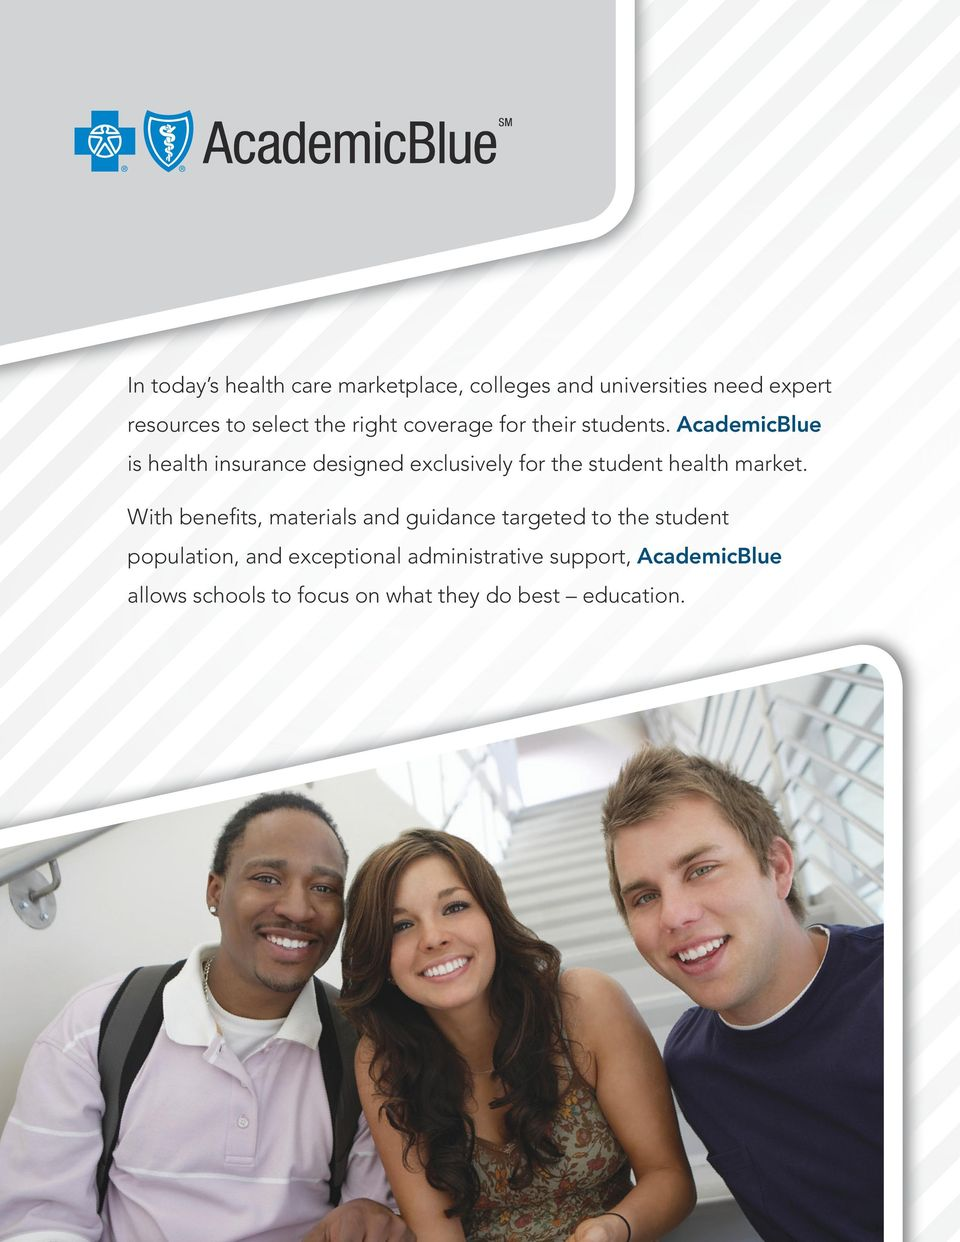 AcademicBlue is health insurance designed exclusively for the student health market.